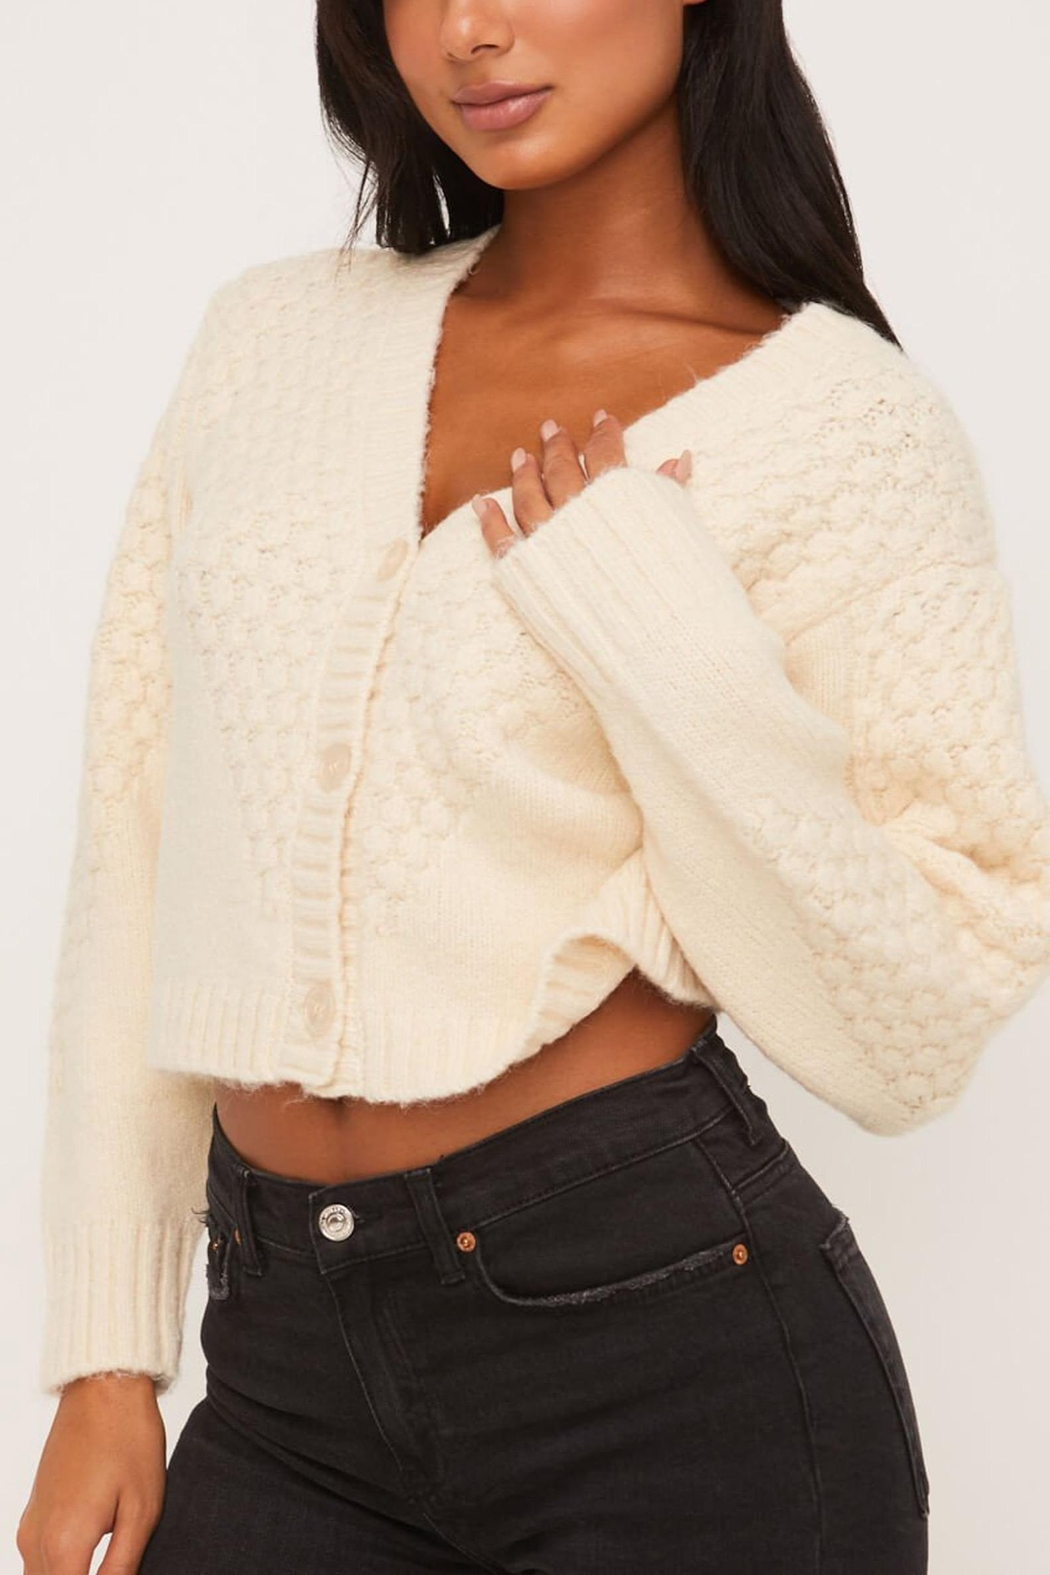 Lush Clothing  Cropped Cardigan Sweater - Front Cropped Image